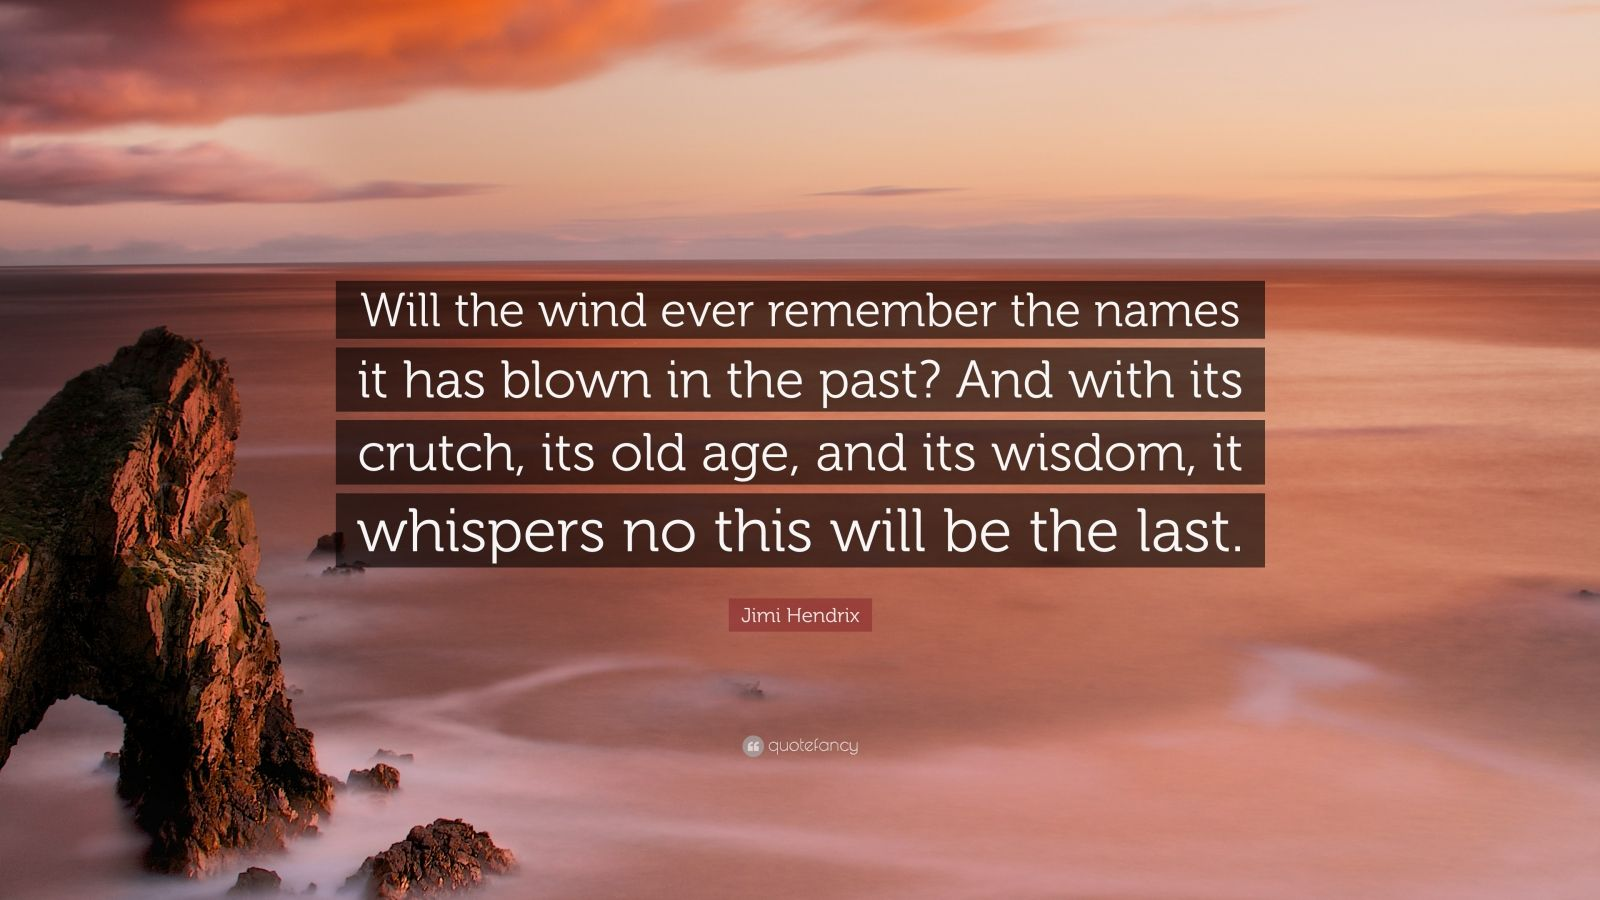 """Jimi Hendrix Quote: """"Will the wind ever remember the names it has blown in the past? And with its crutch, its old age, and its wisdom, it whispers no this will be the last."""""""